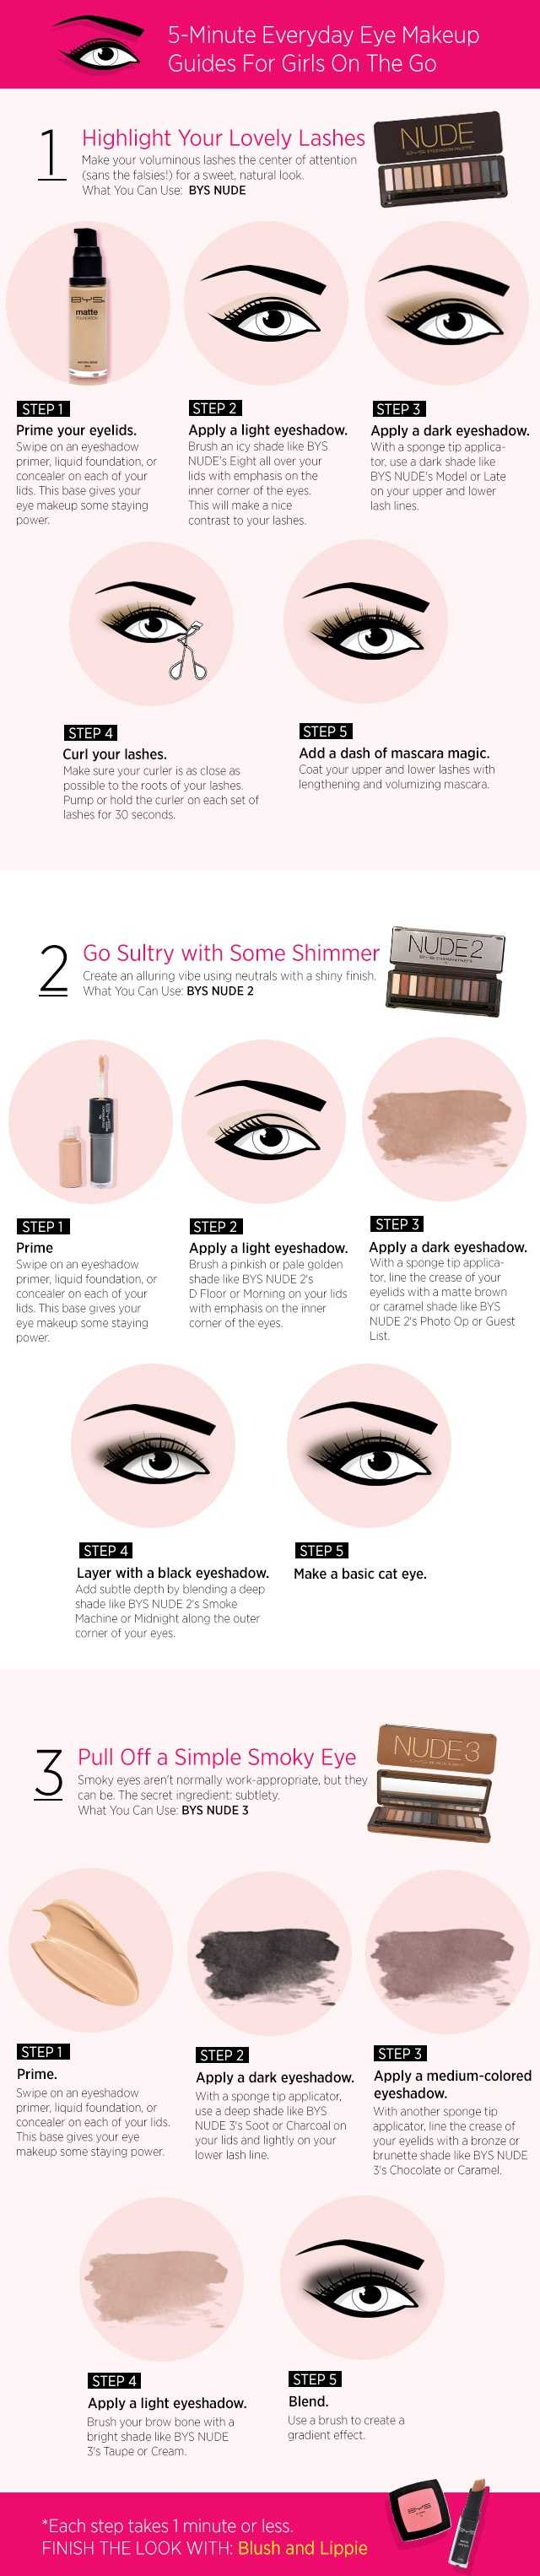 5-Minute Everyday Eye Makeup Guides For Busy Girls